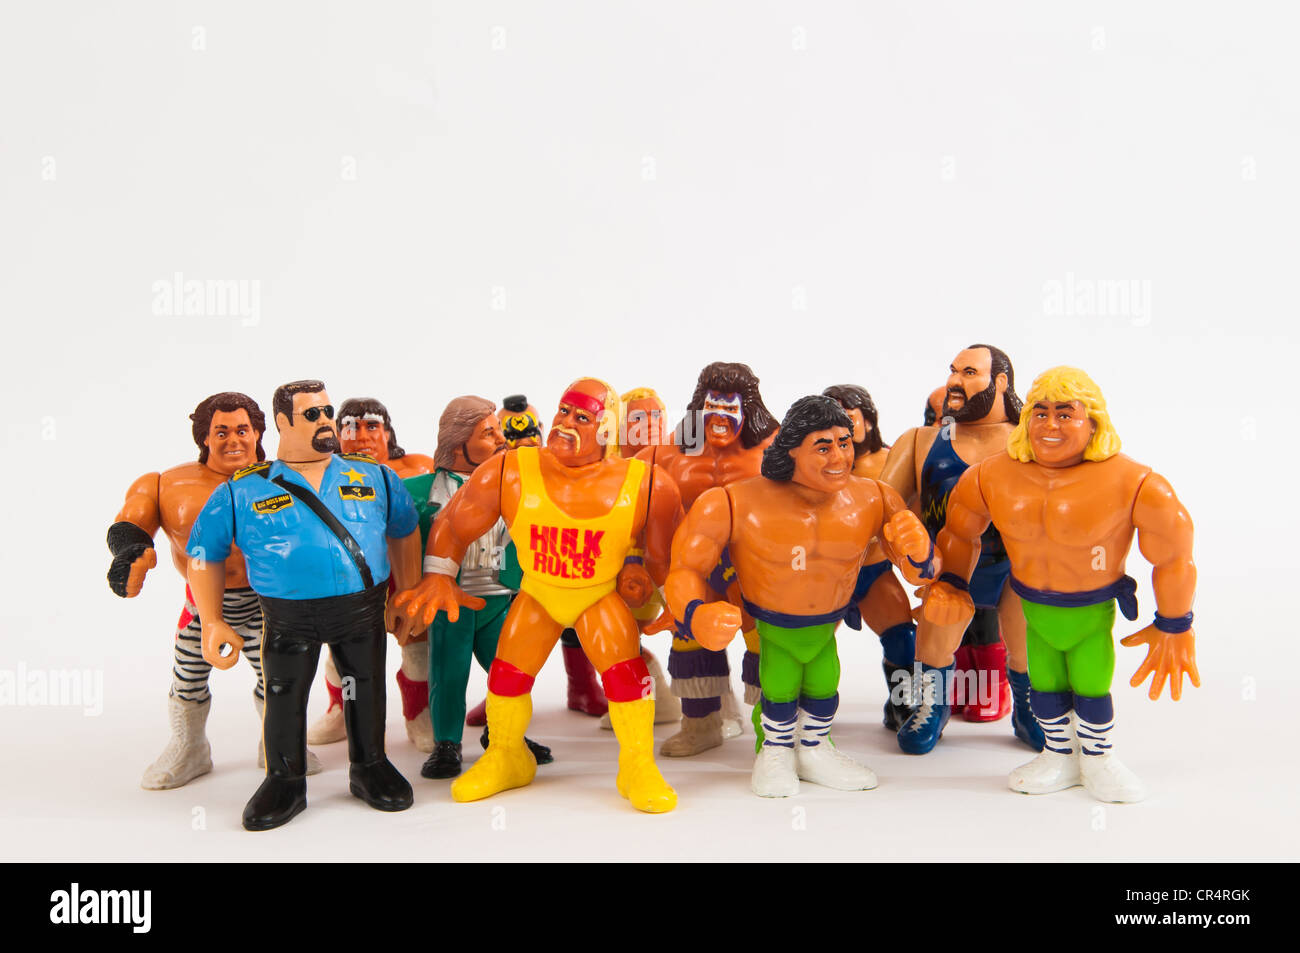 Jouets WWF Wrestling Chiffres Photo Stock